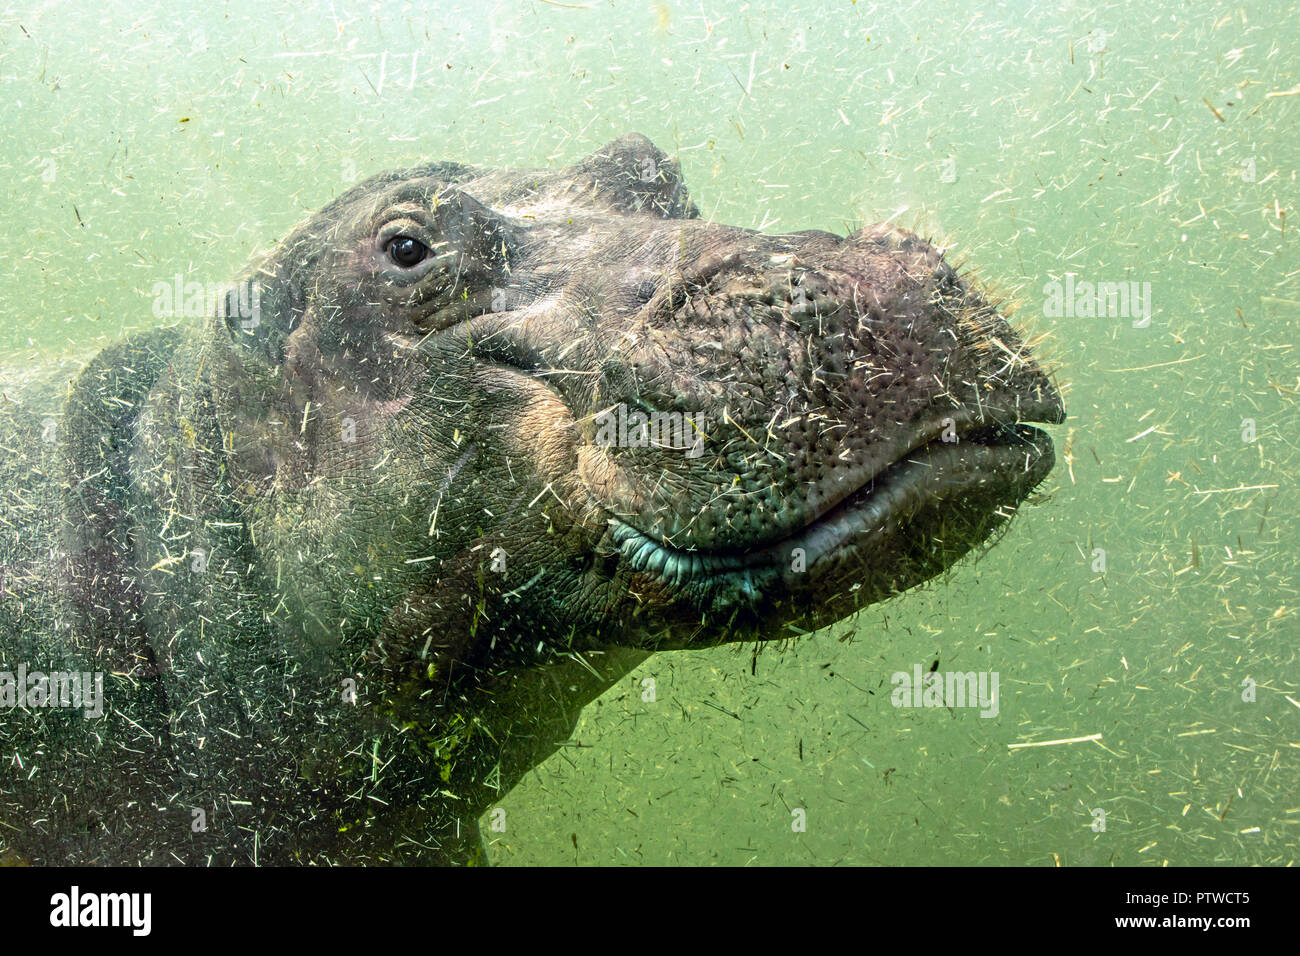 A young hippo floats under water. Hippopotamus swims in dirty green water. - Stock Image